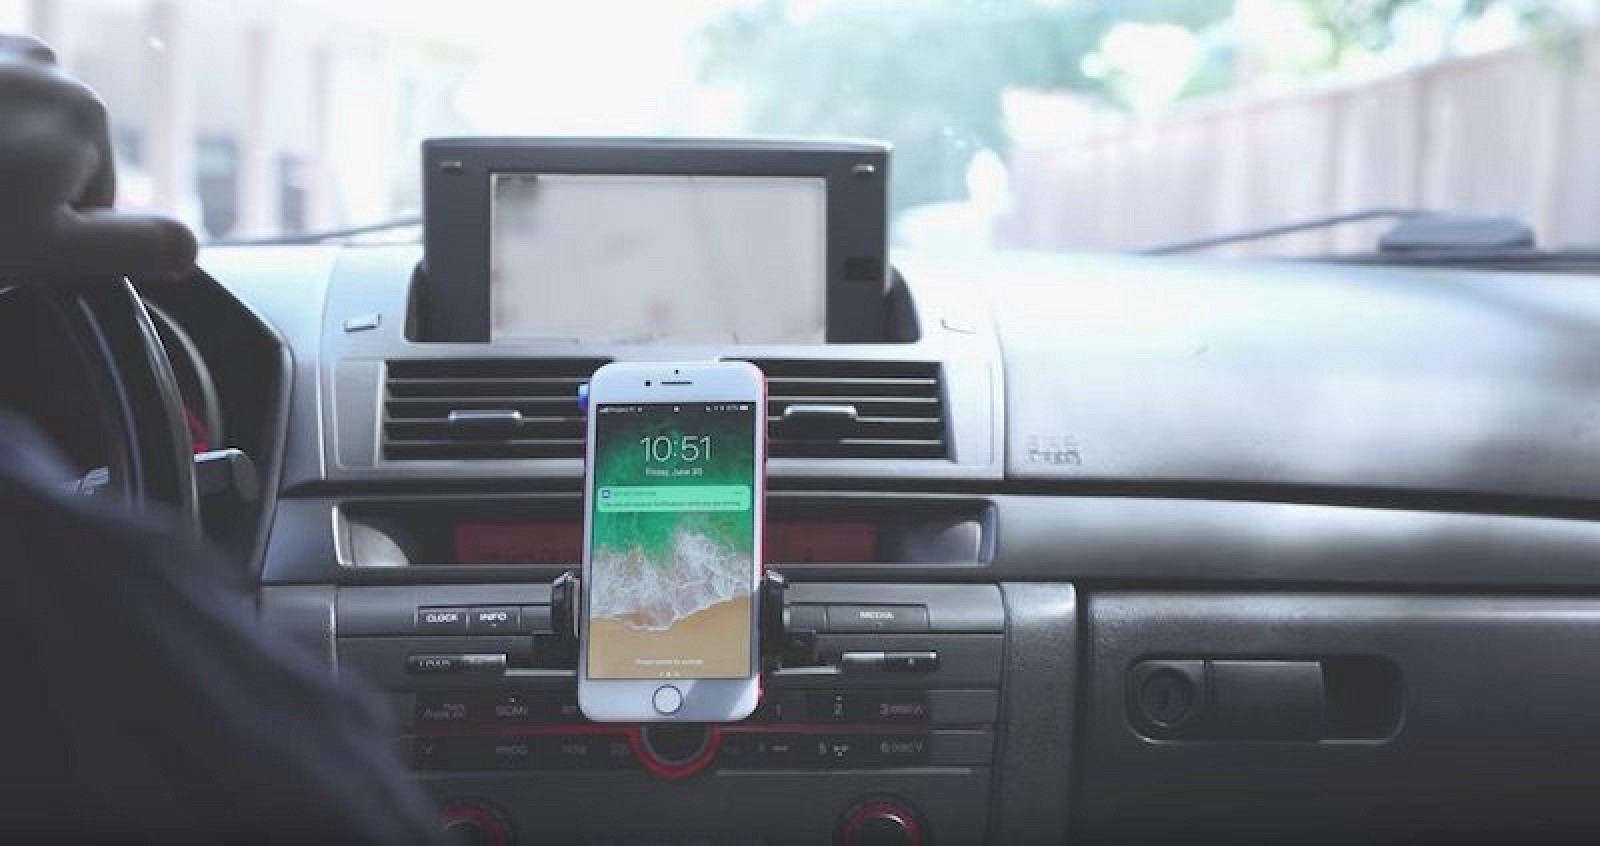 Apple Insists It's Not Responsible For Distracted Driving Accidents Involving iPhones